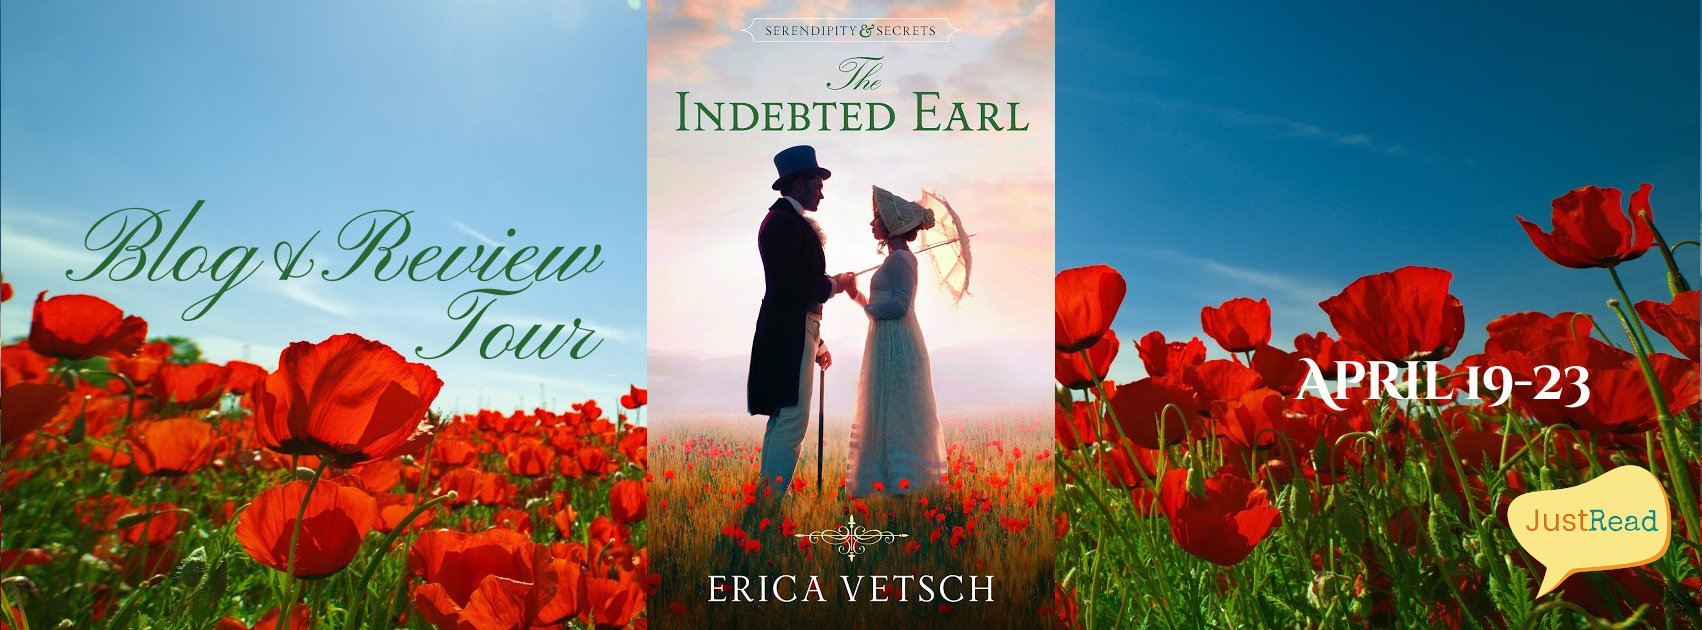 Welcome to The Indebted Earl Blog + Review Tour & Giveaway!